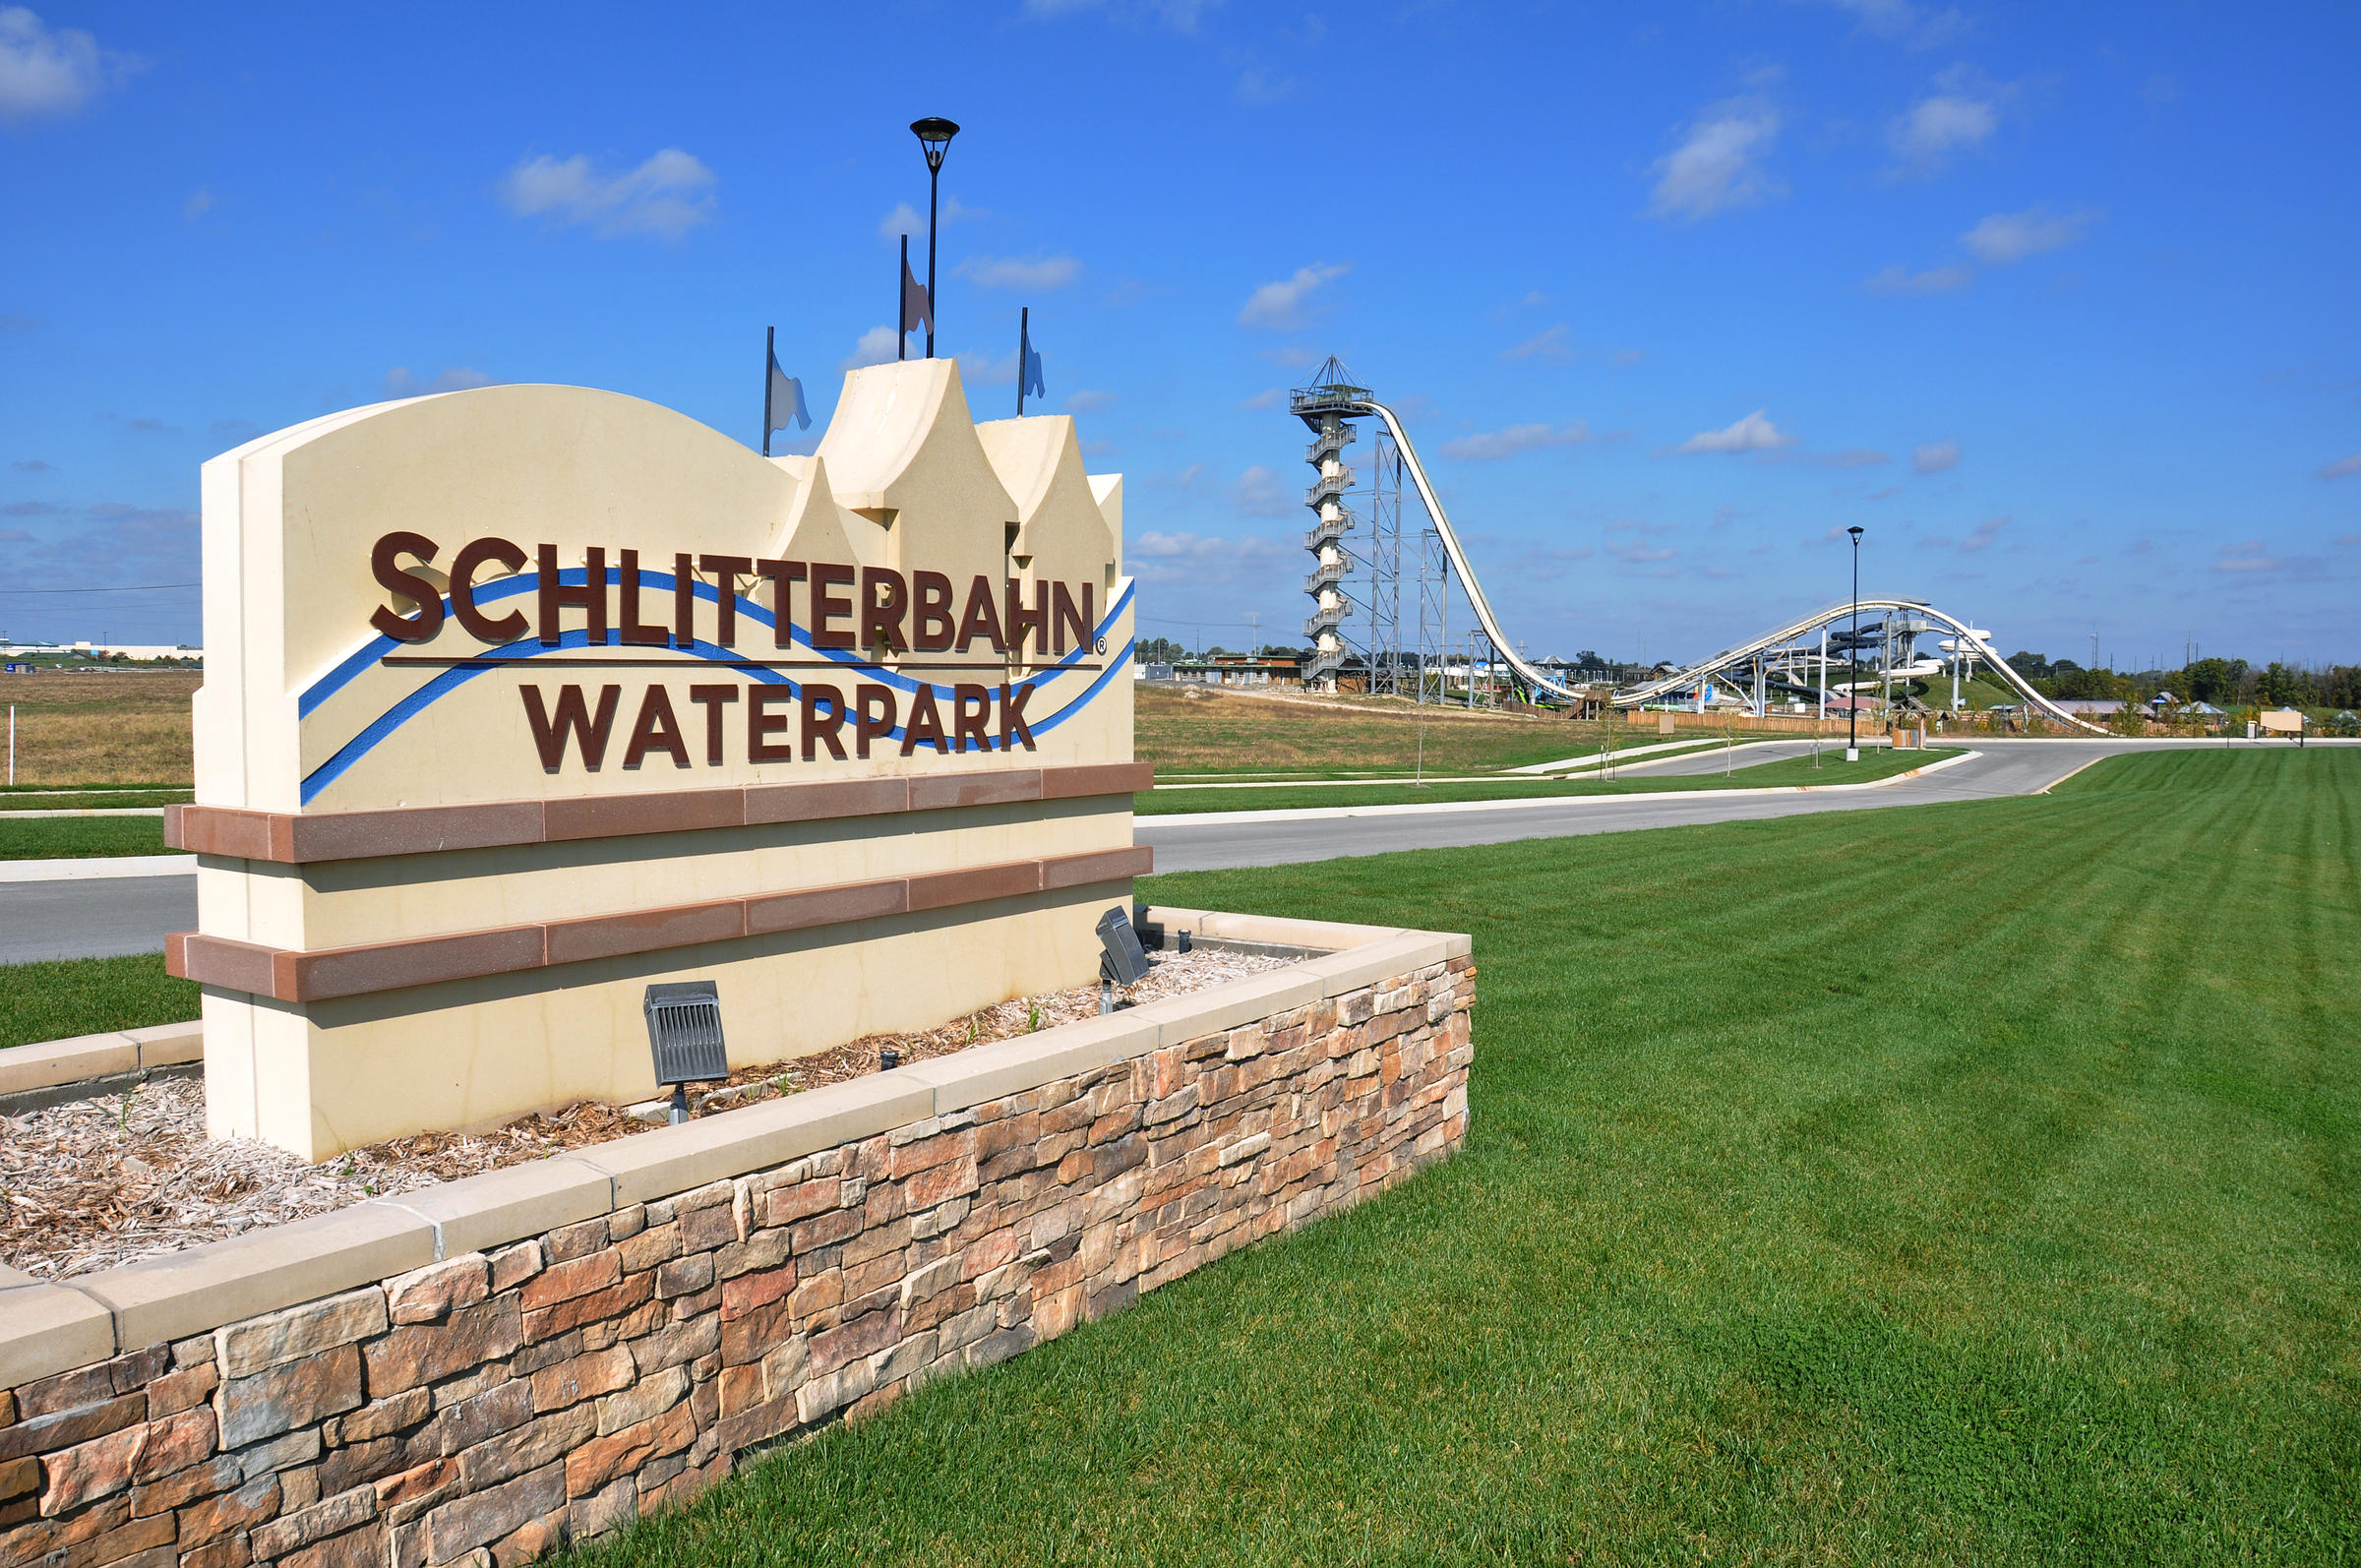 Schlitterbahn sells water parks in New Braunfels, Galveston